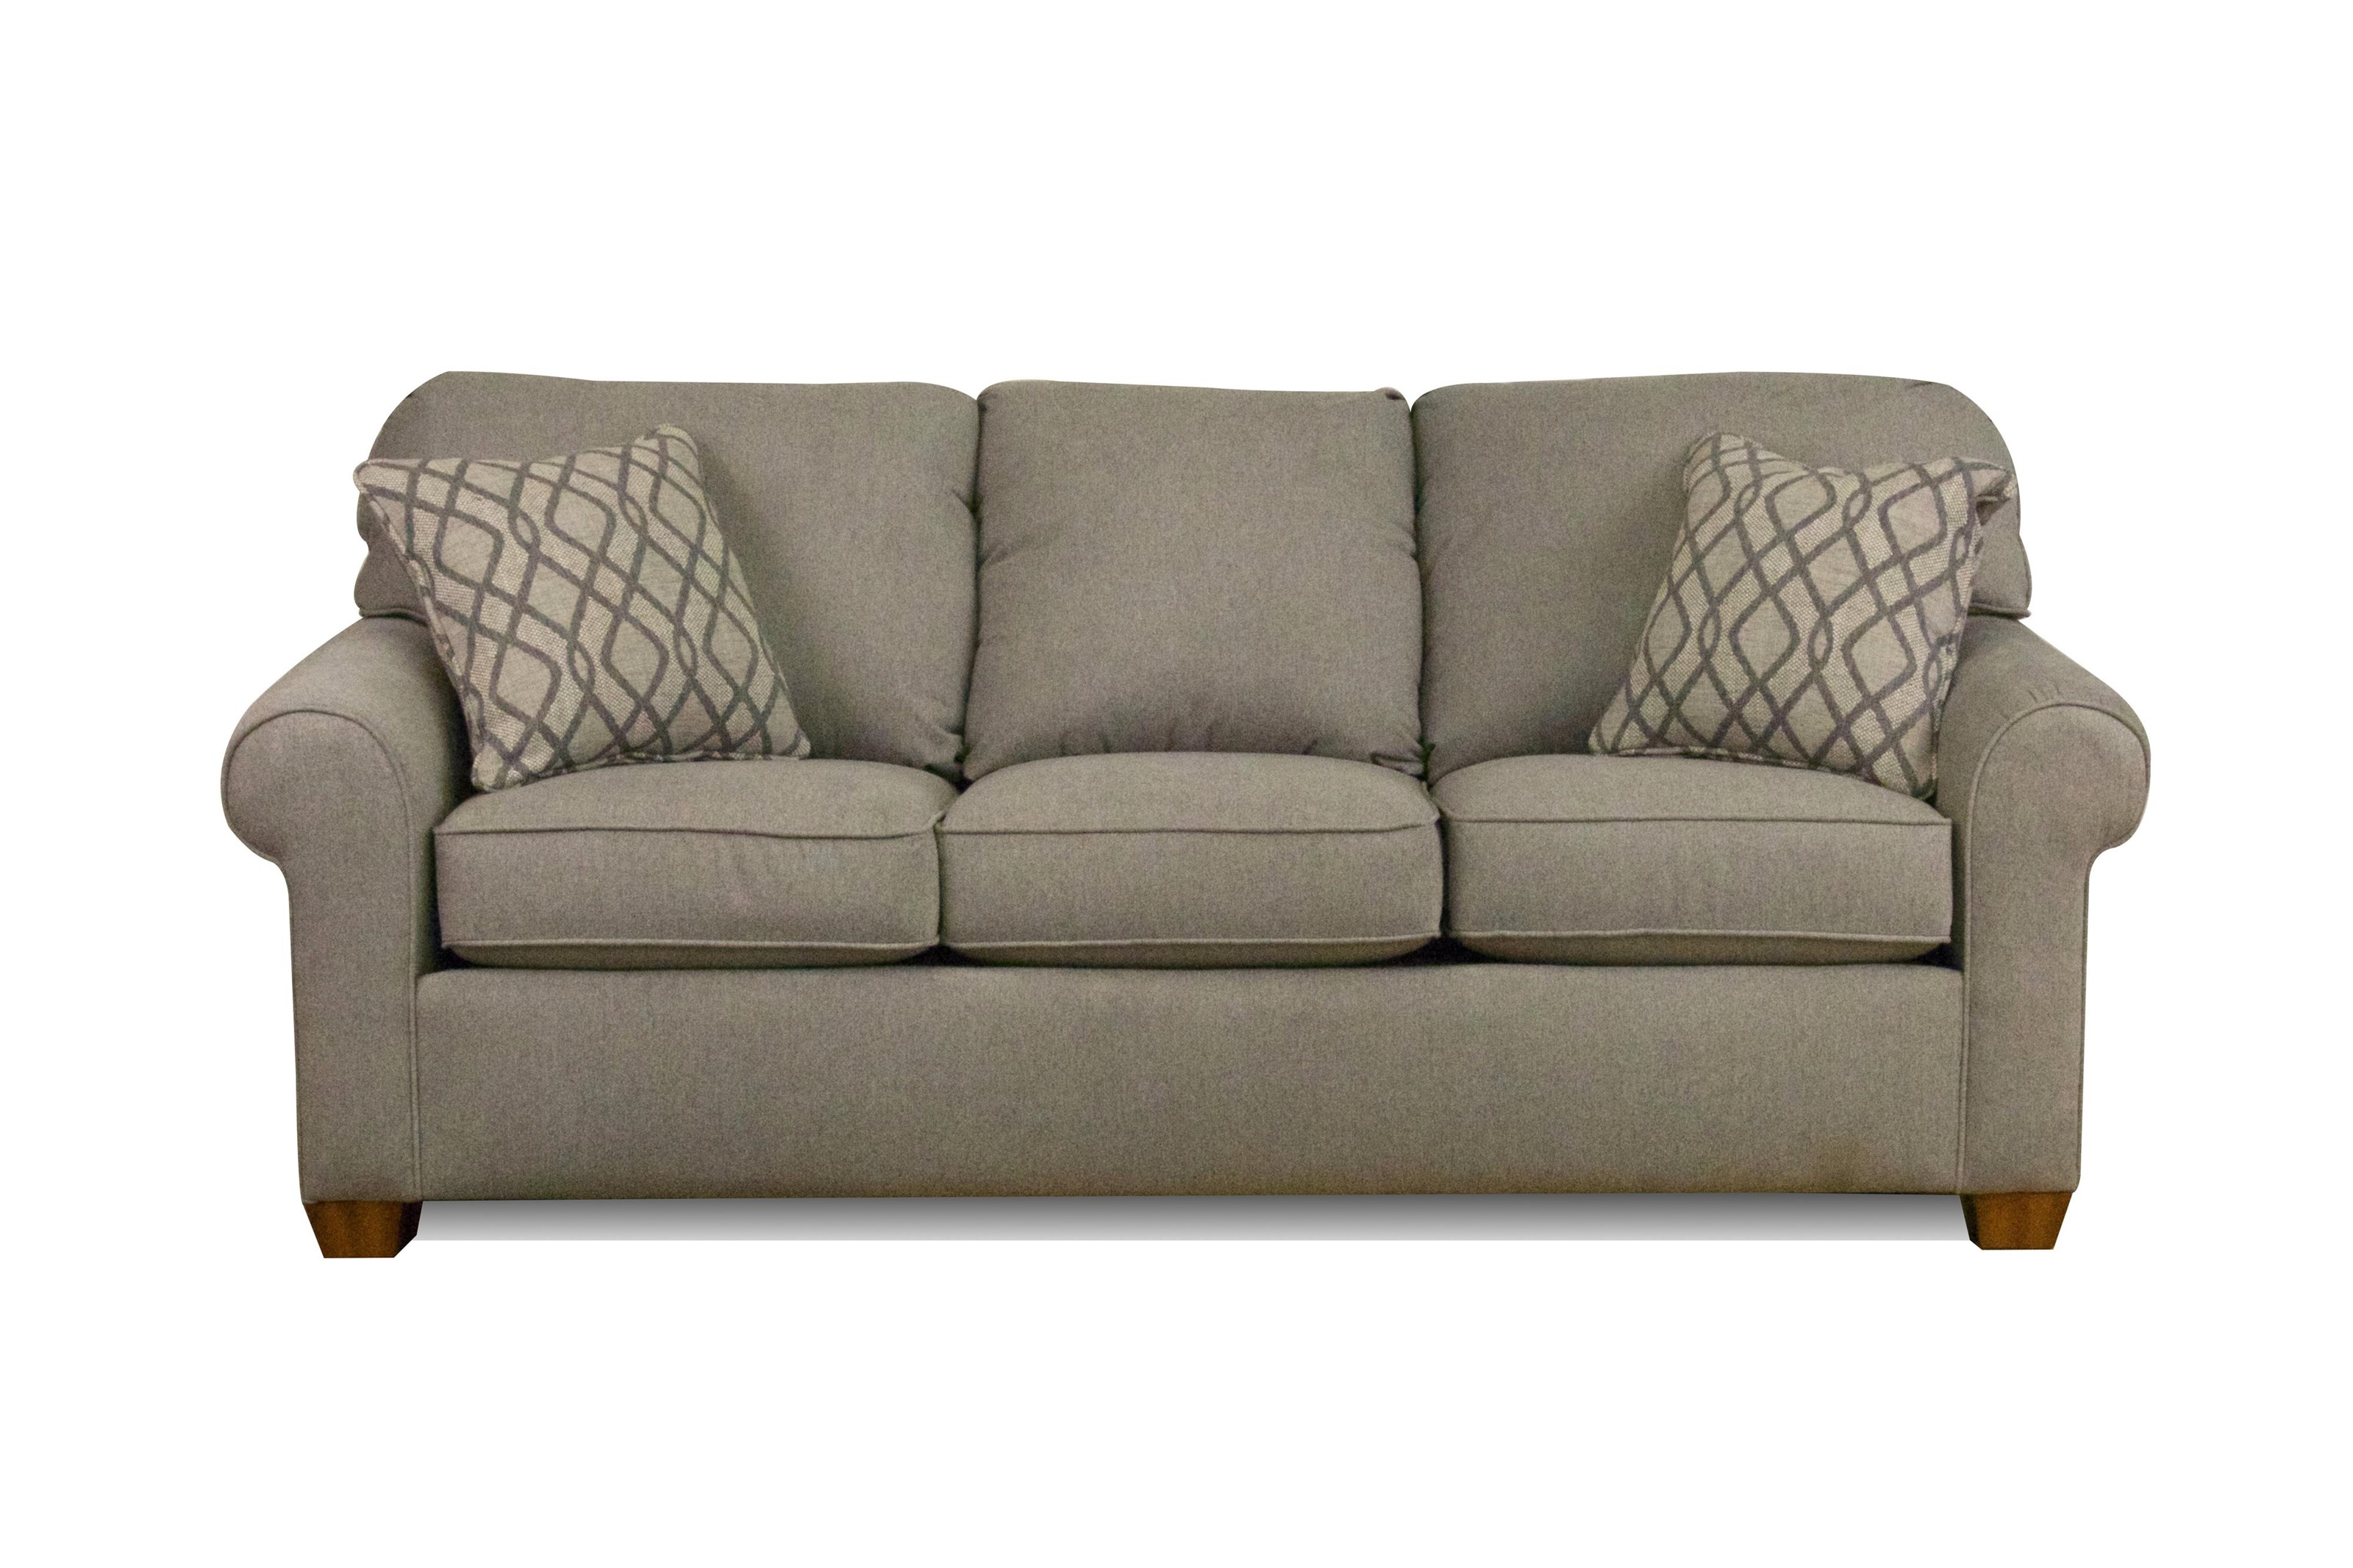 Ruby Gordon Home For Preferred Waylon 3 Piece Power Reclining Sectionals (View 18 of 20)